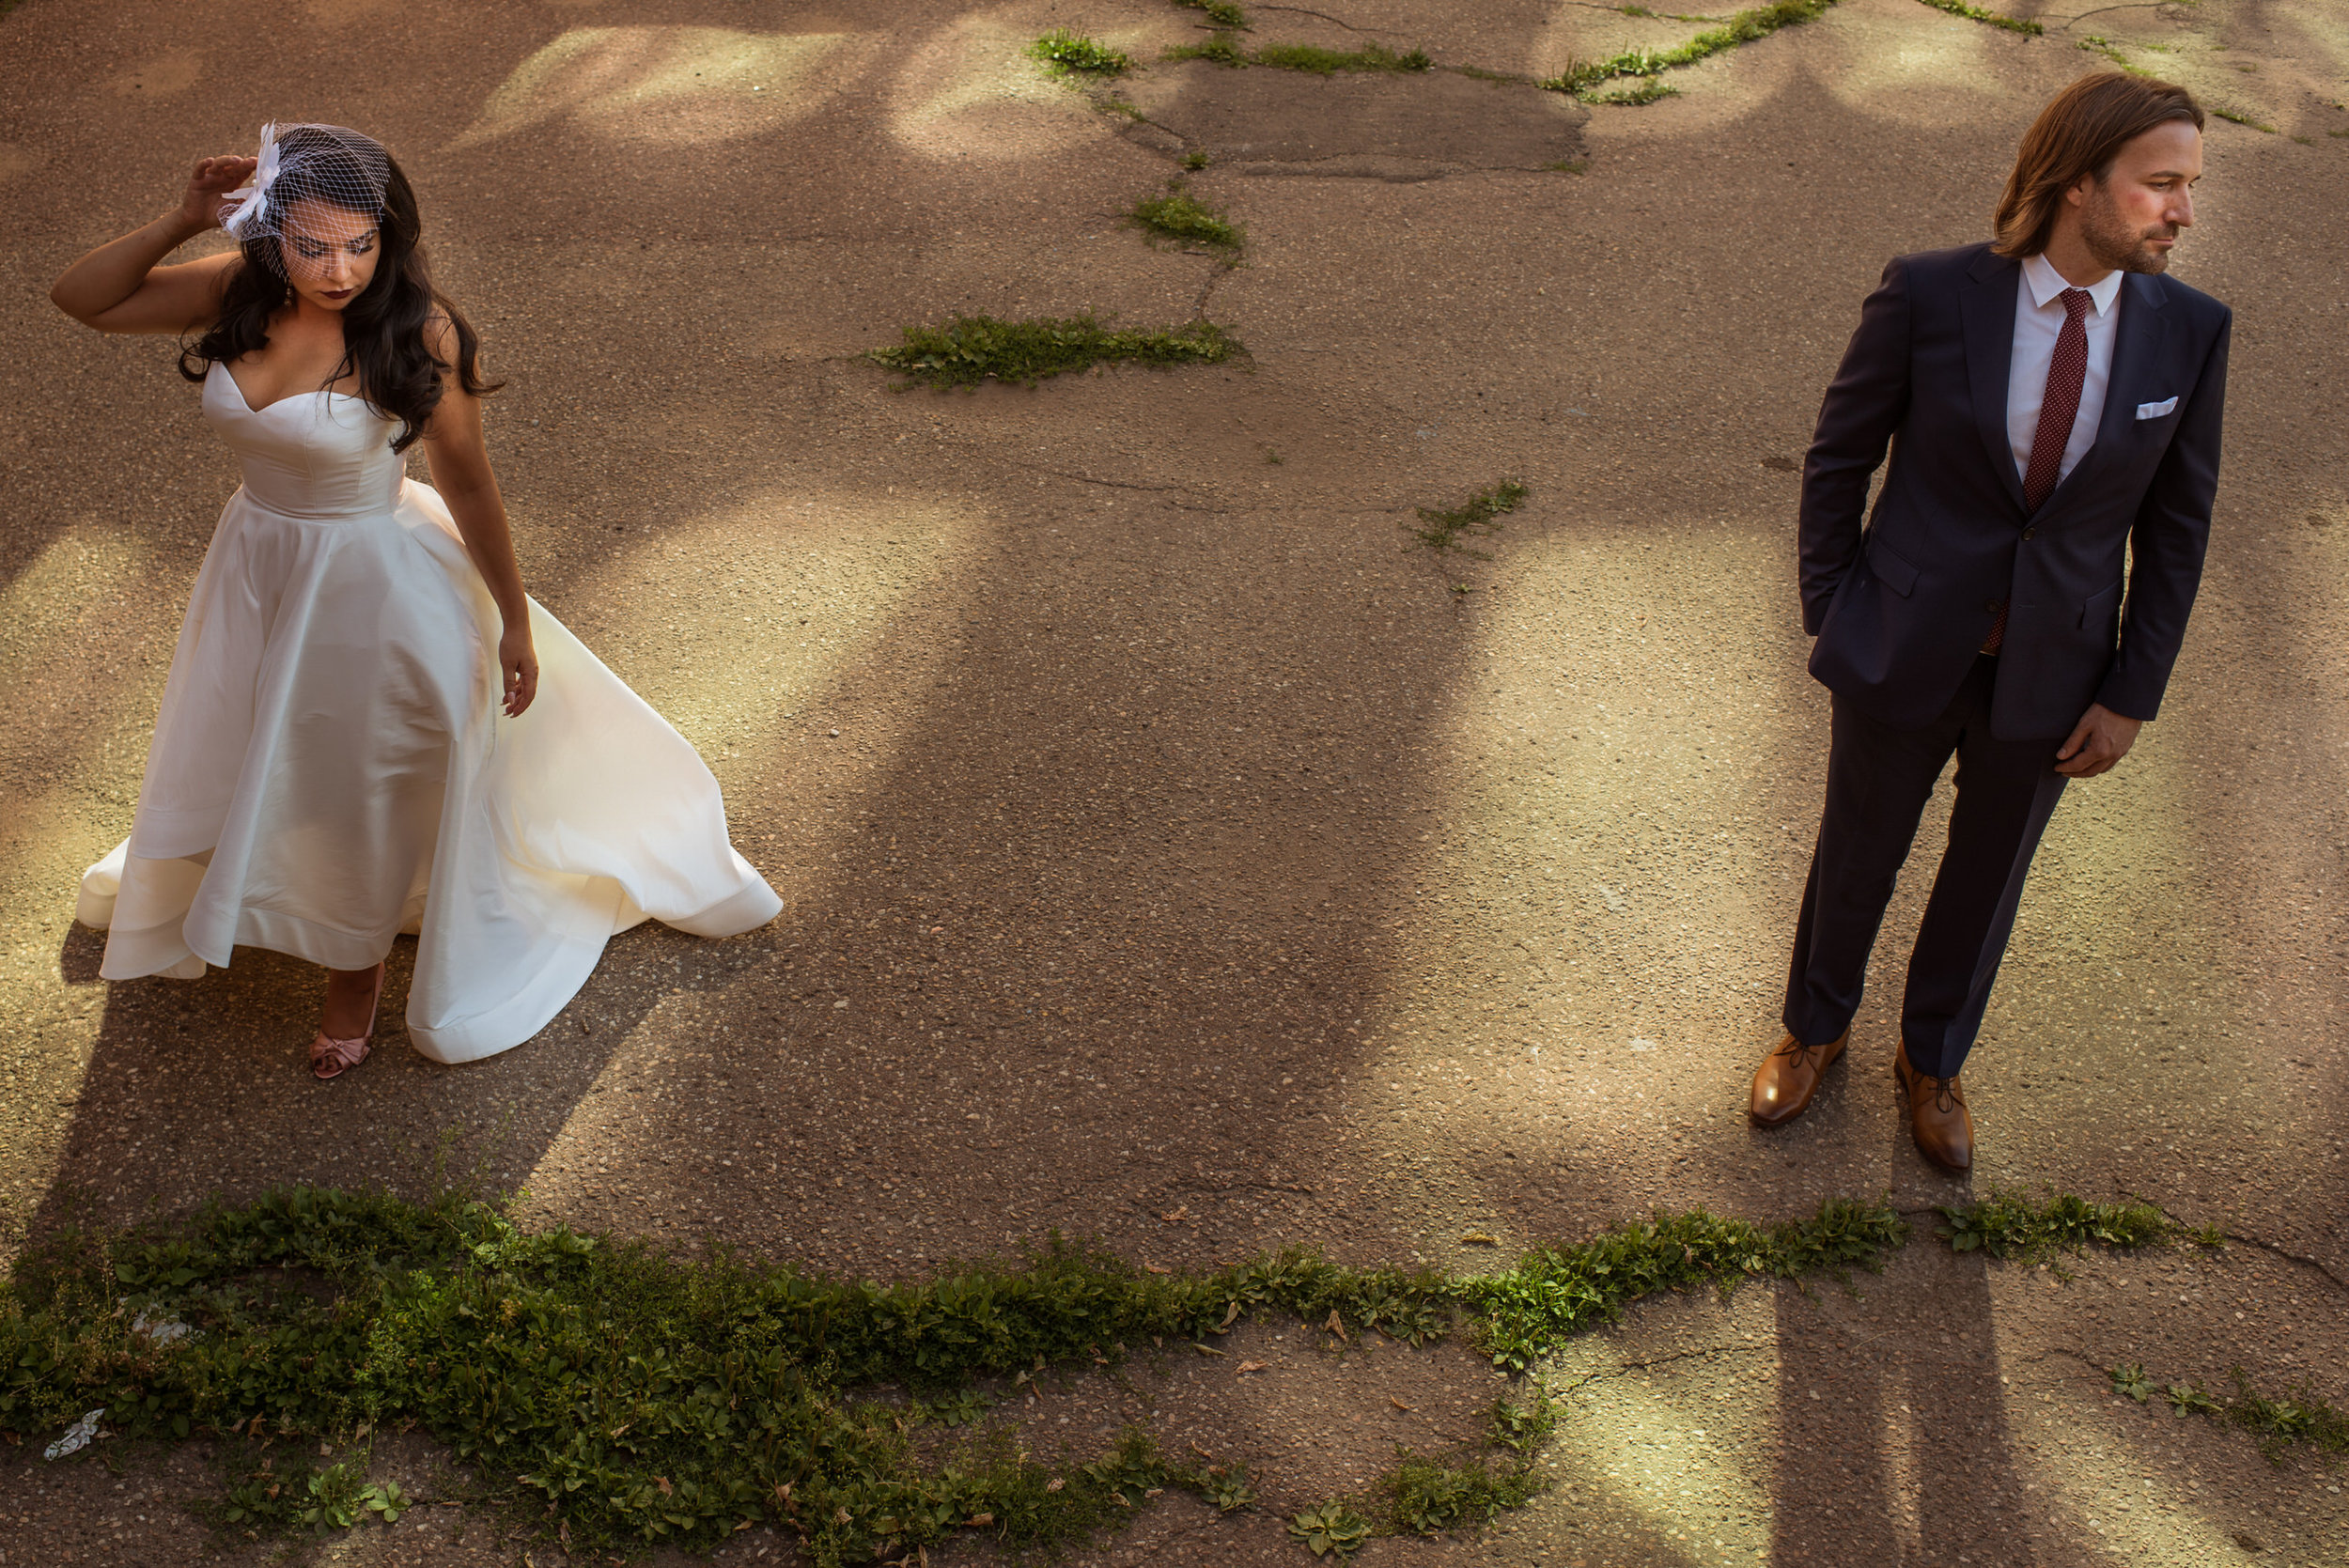 Edmonton_wedding_foundry_room_andrea_michael_calgary-engagement-26.jpg